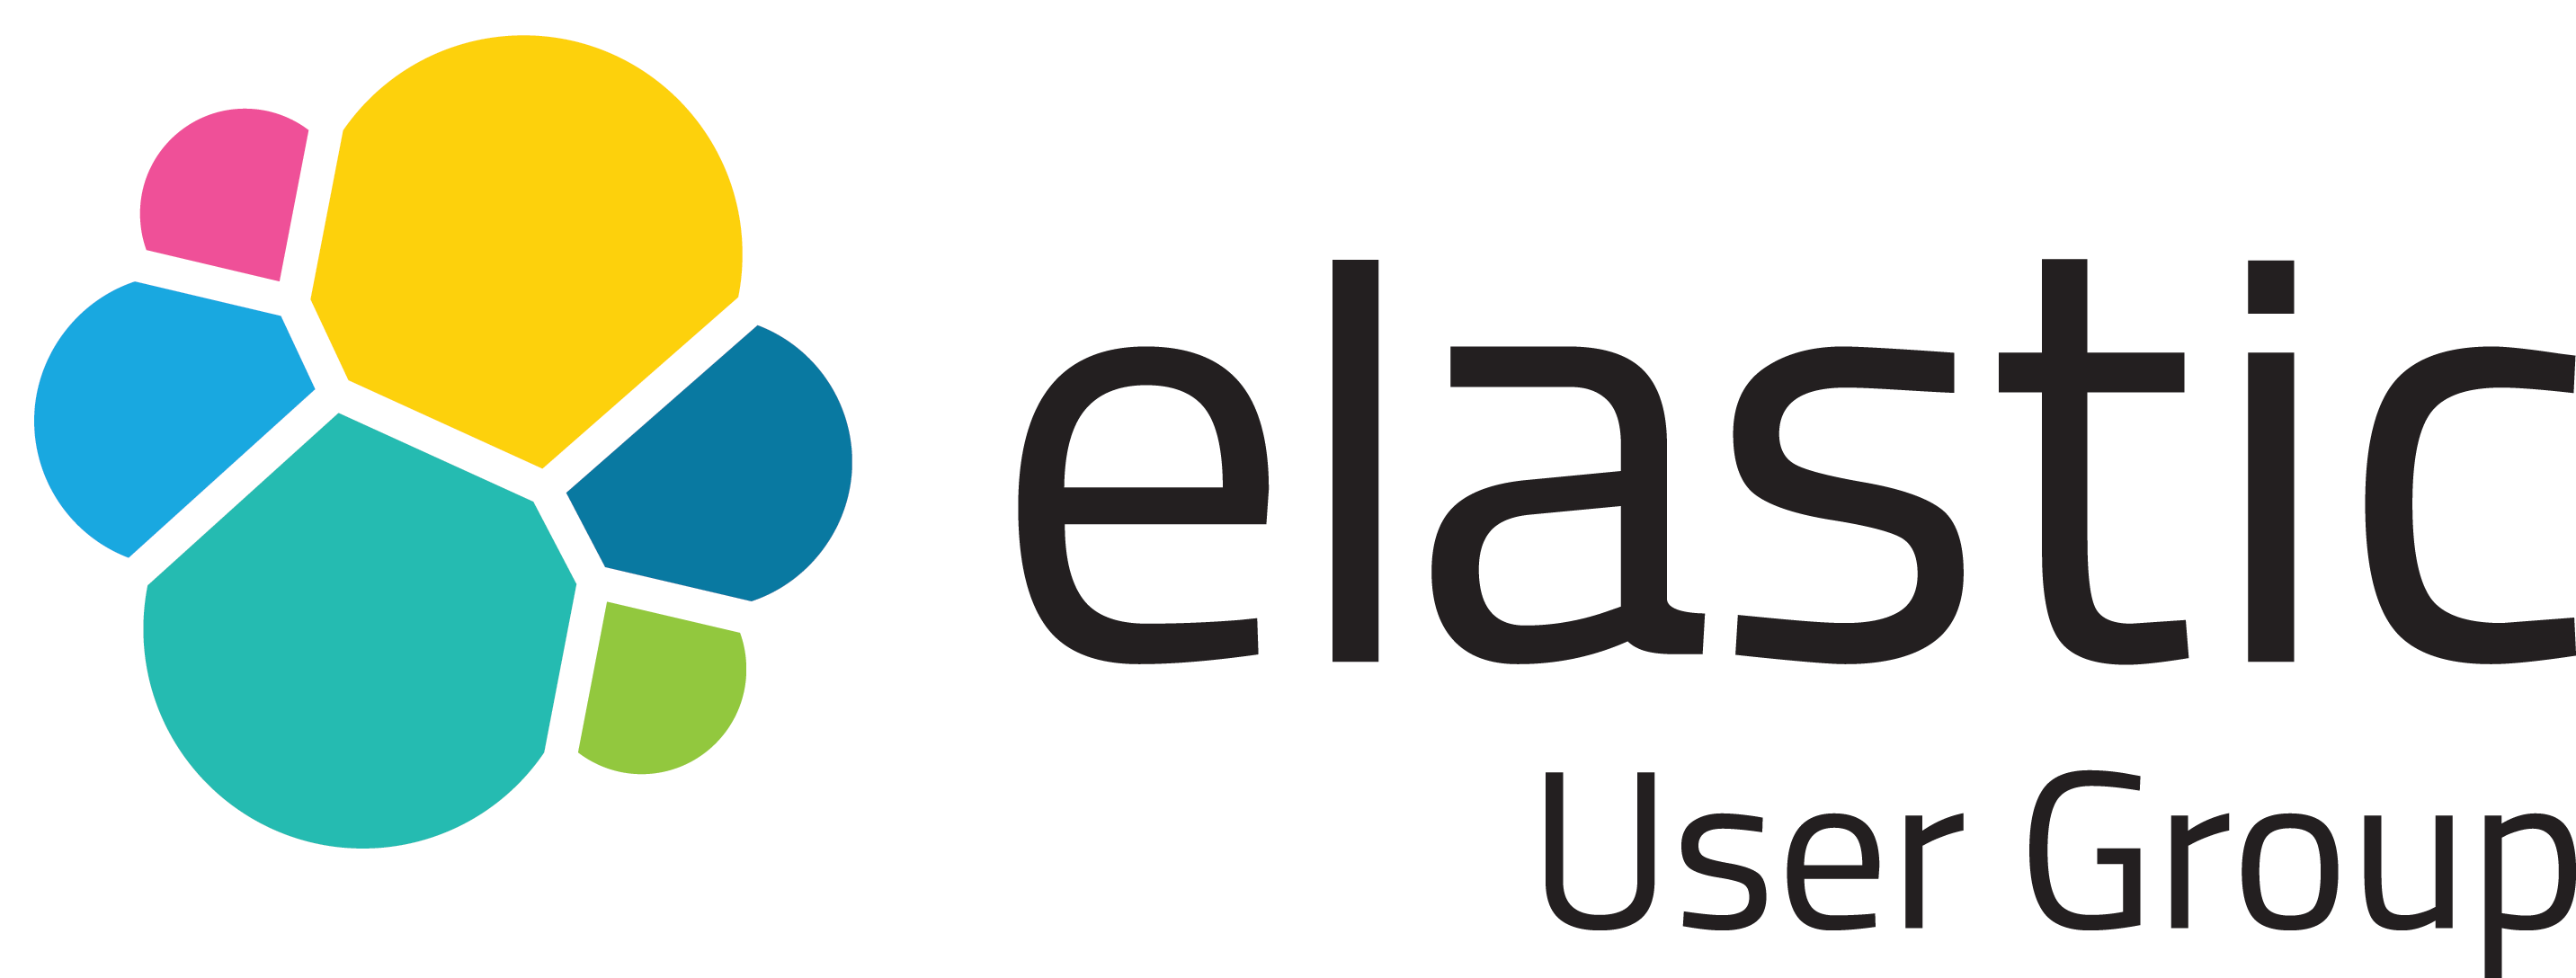 Download User Group Logo - Elastic Logo Png PNG Image with